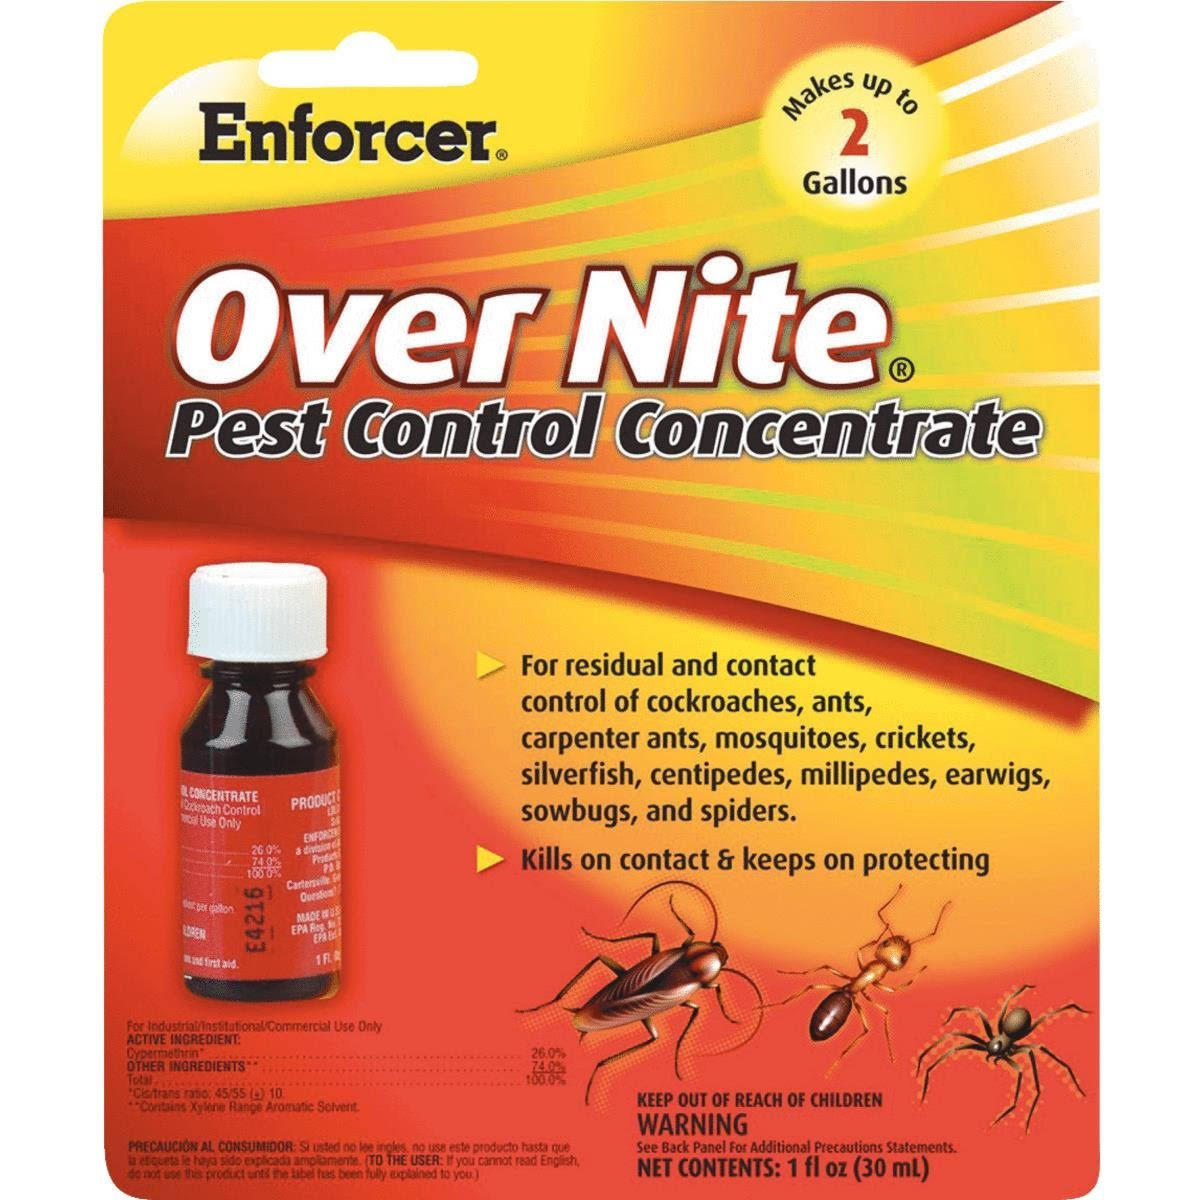 Enforcer Over Nite Pest Control Concentrate - 30ml